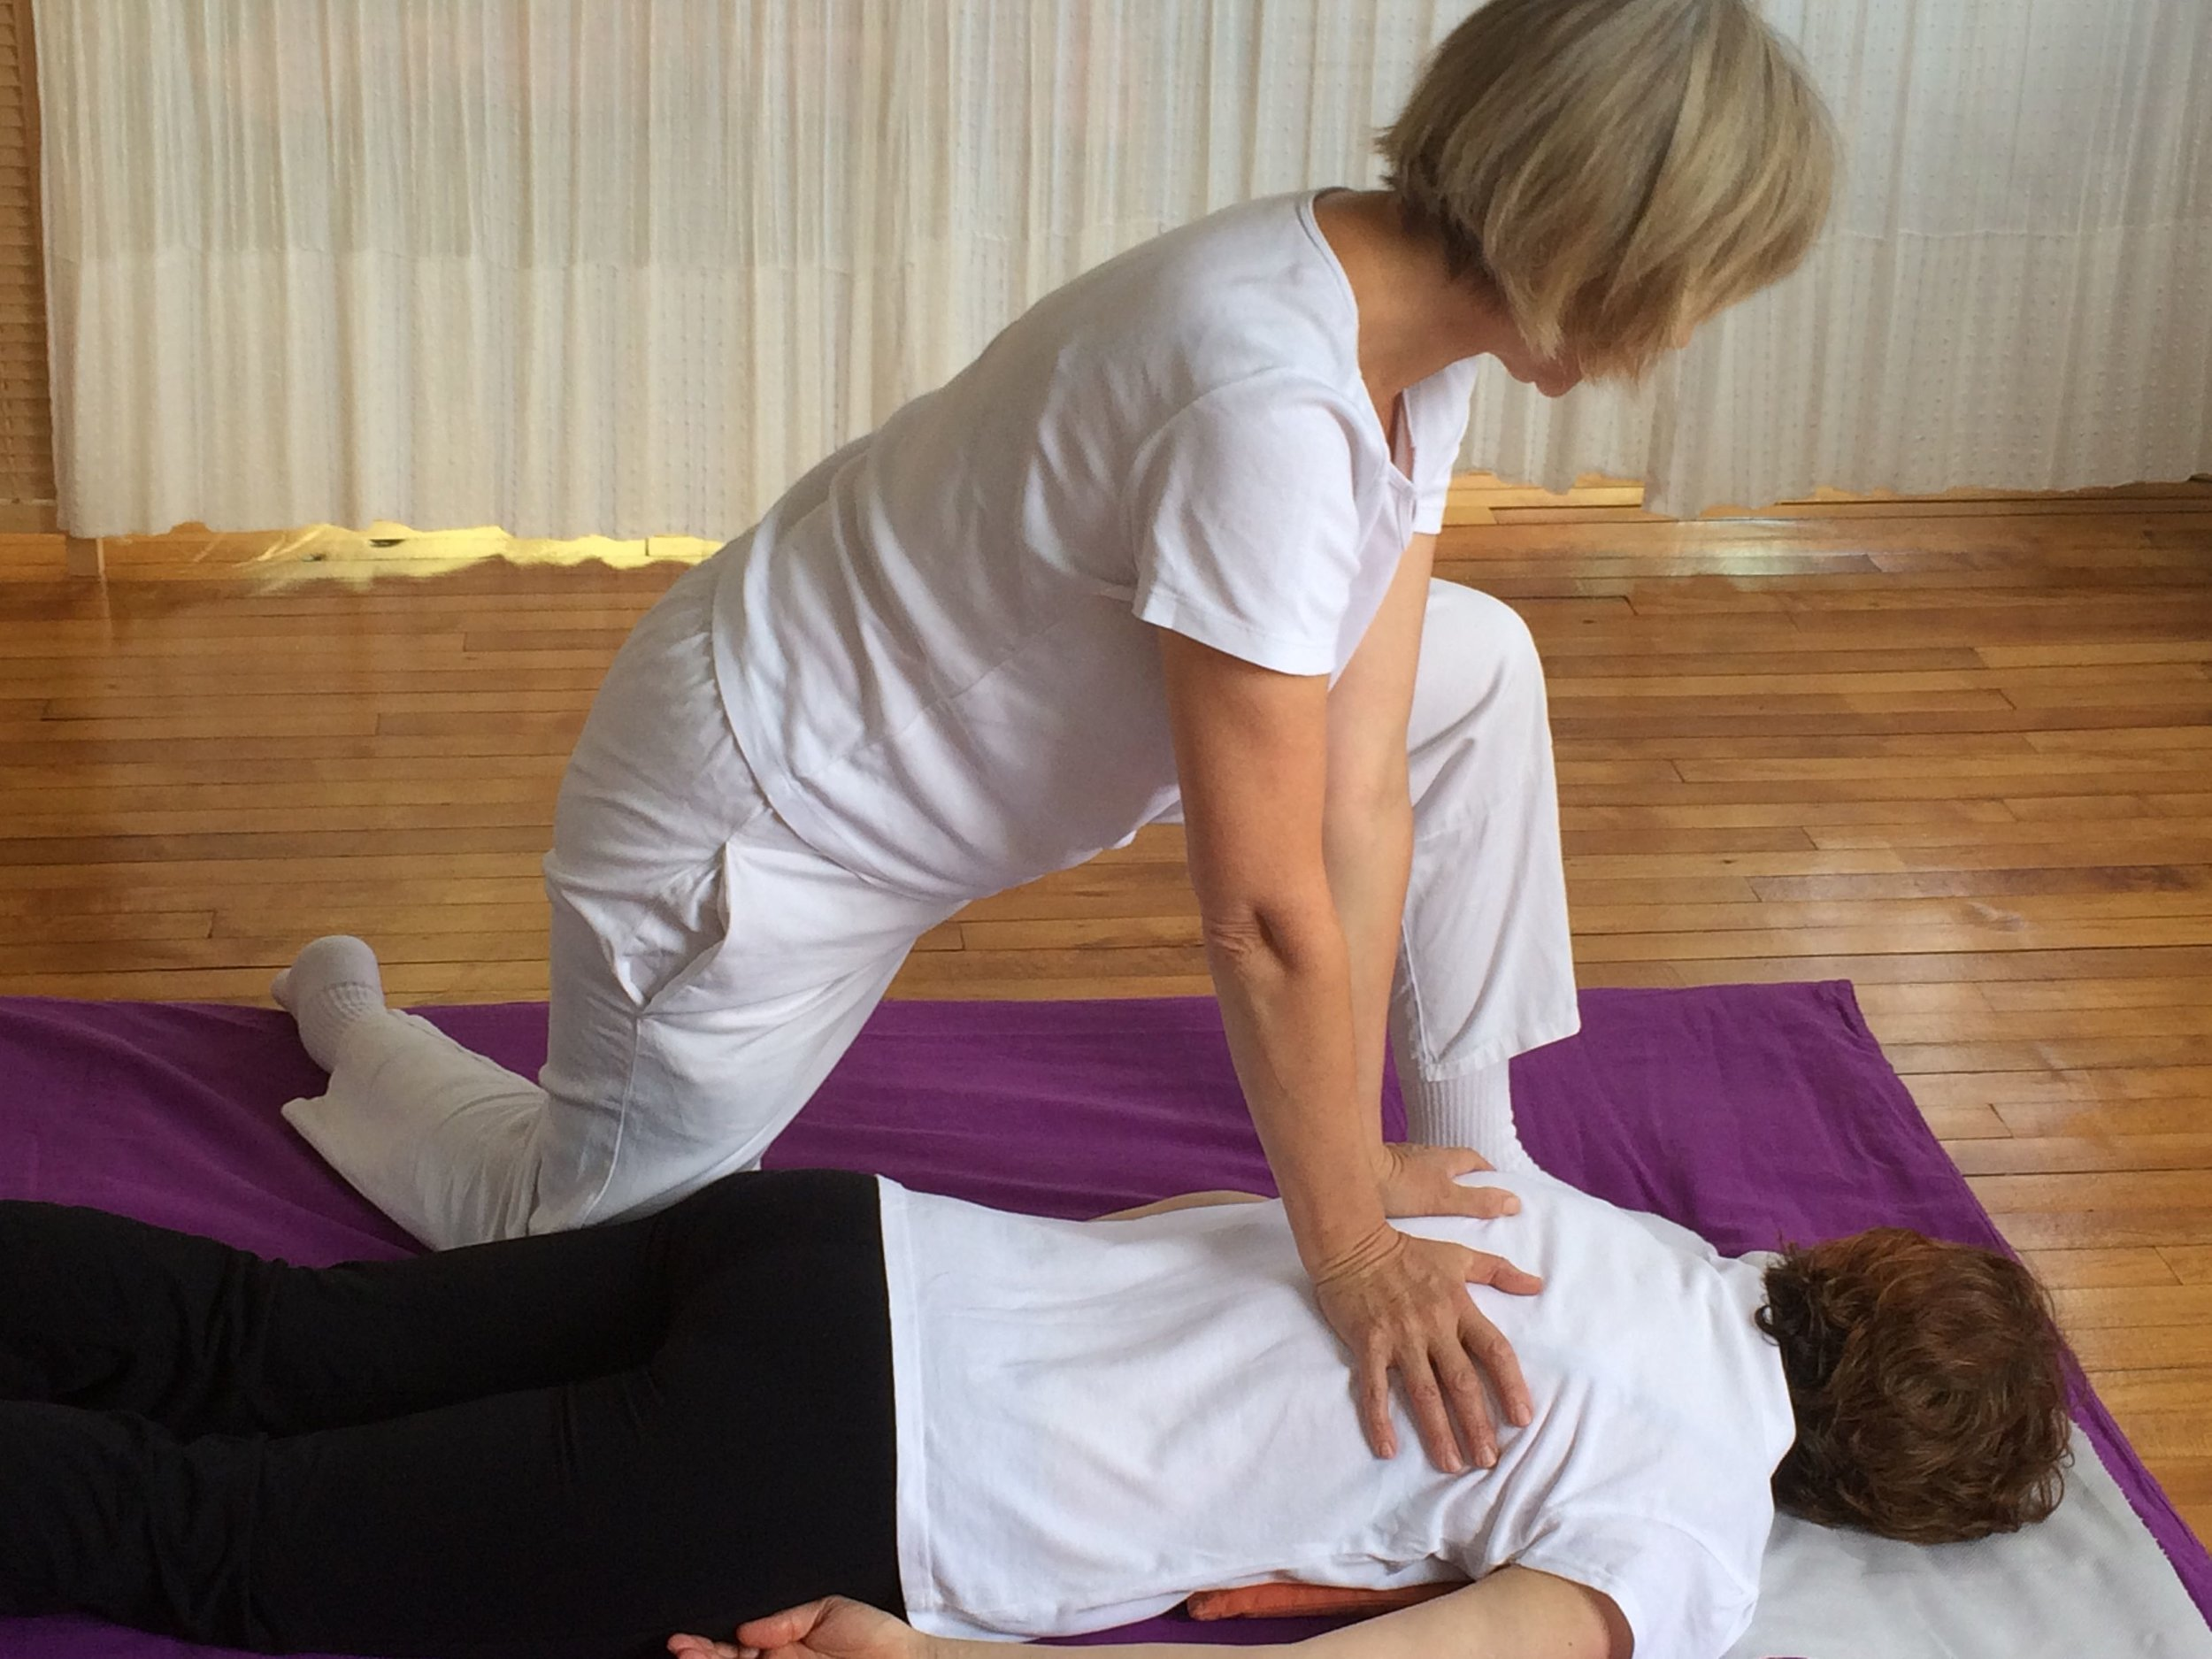 Shiatsu Massage at Haelan Therapy in Hitchin, Hertfordshire encourages your body's natural ability to repair, rebalance and integrate mind and body